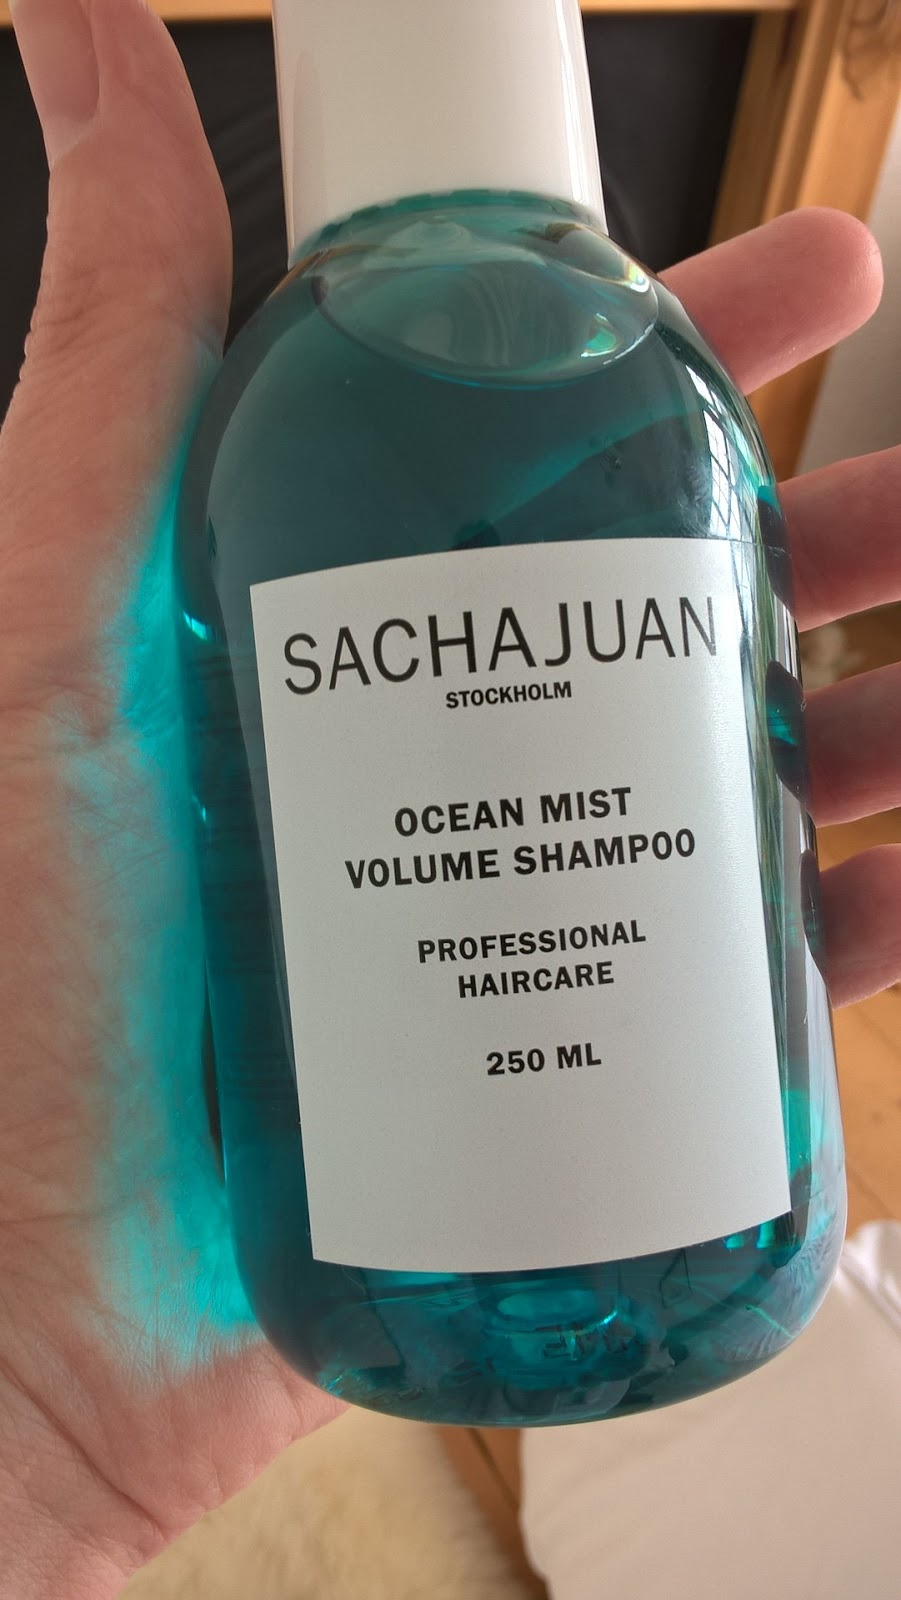 shampoos for thinning and fine hair - Sachajuan Ocean Mist Volume Shampoo